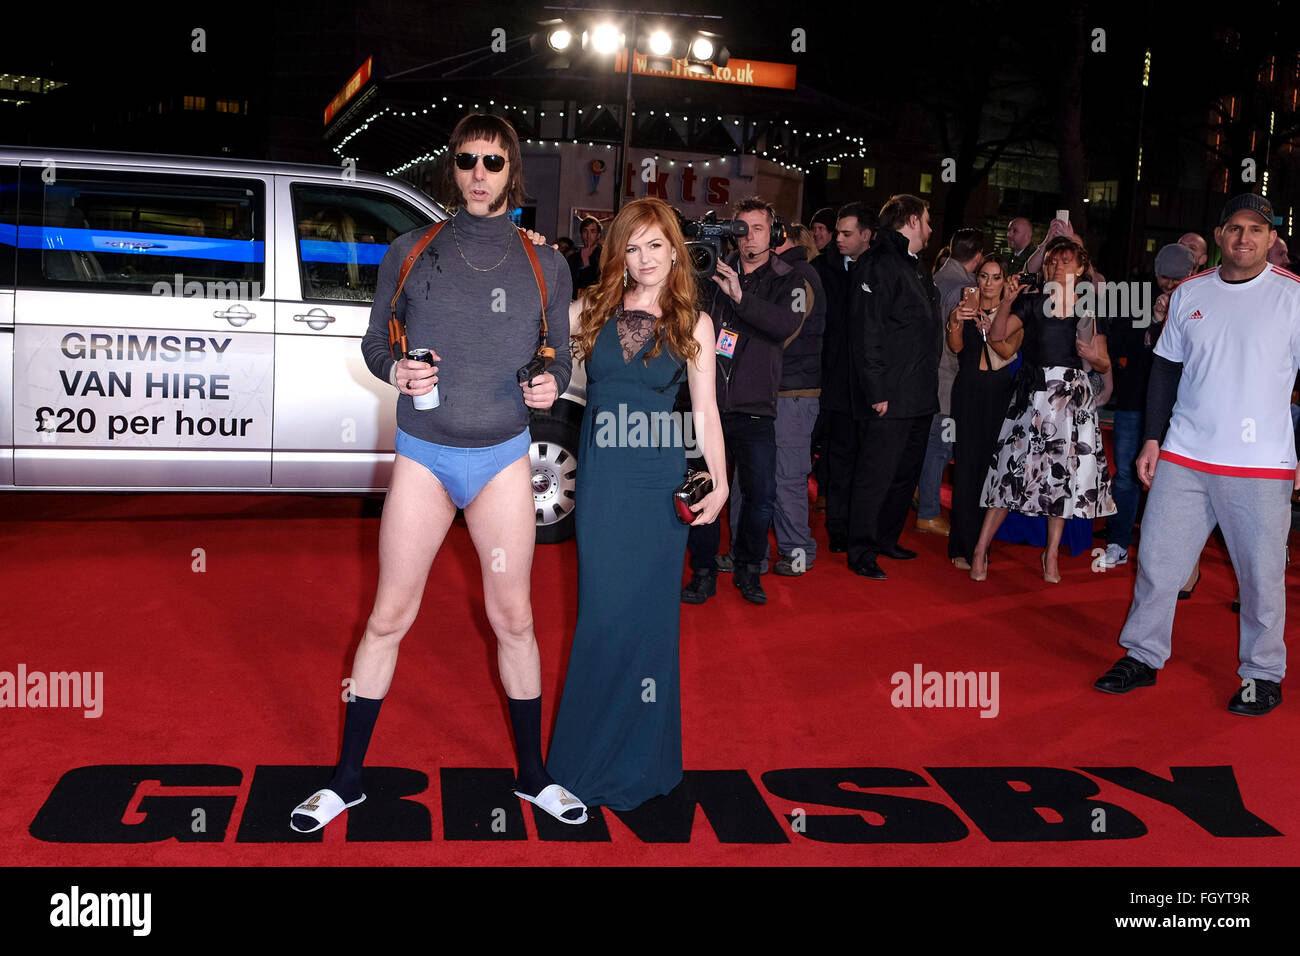 The World Premiere of Grimsby on 22/02/2016 at ODEON Leicester Square, London. Pictured: Sacha Baron Cohen as Nobby - Stock Image